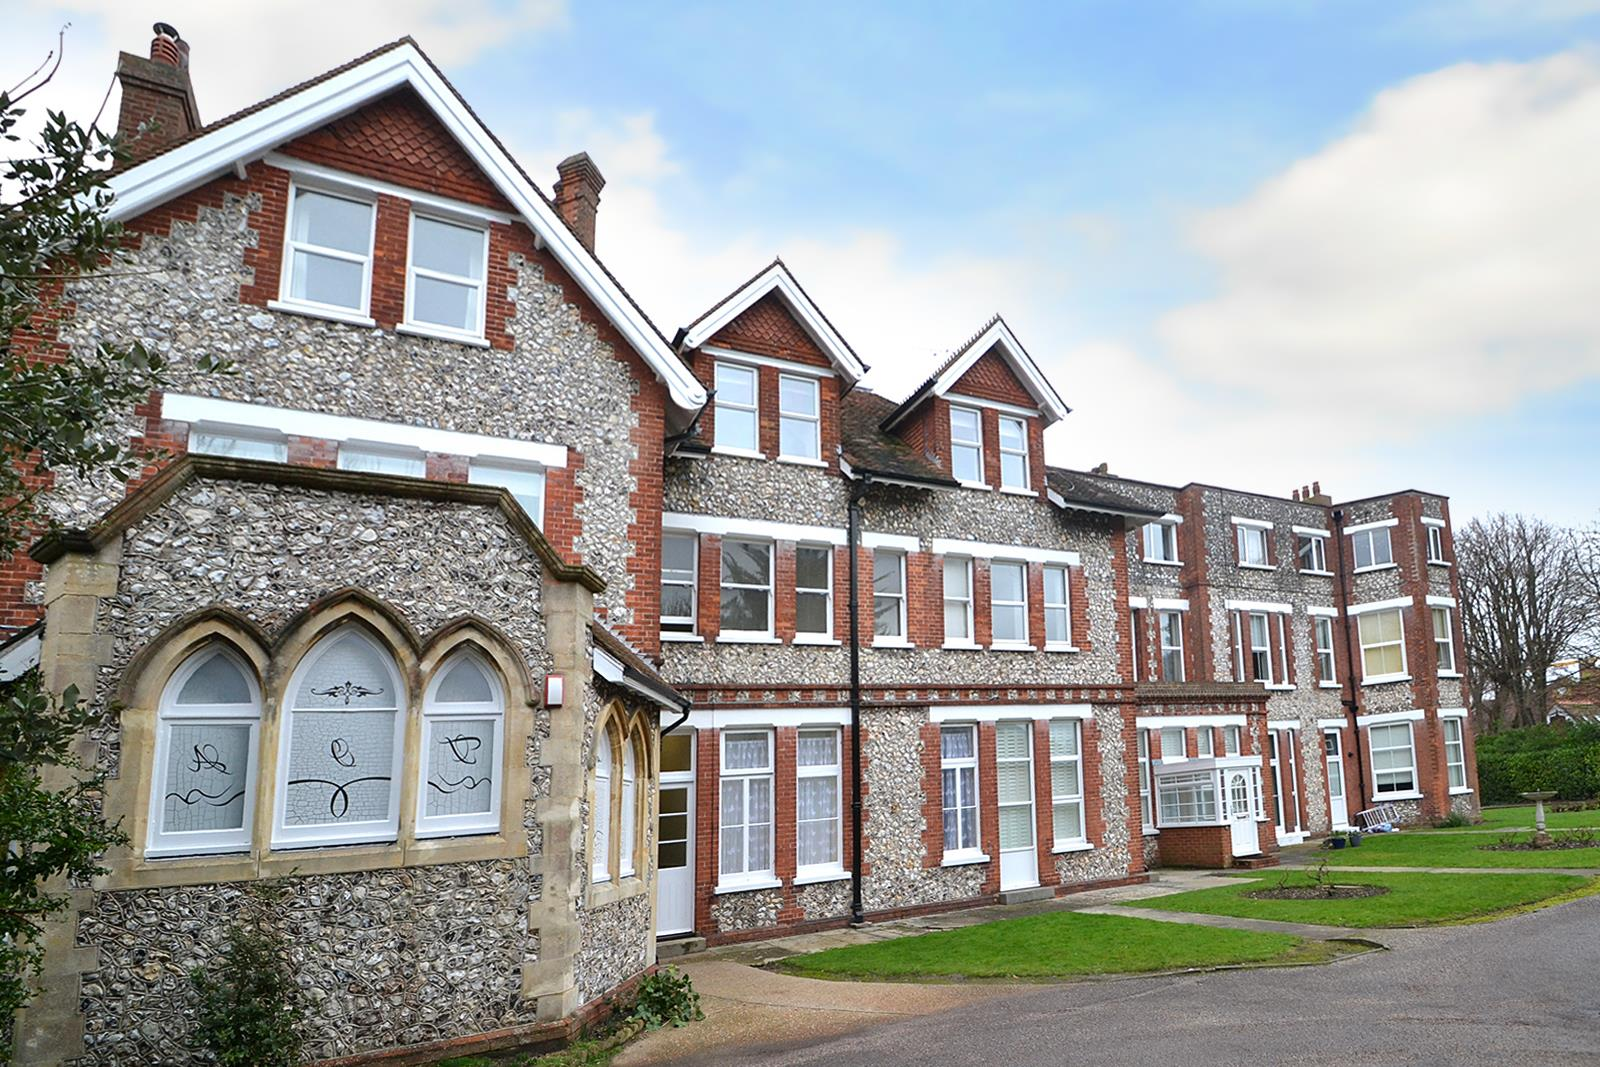 2 Bedrooms Flat for sale in Blackwater Road, Eastbourne